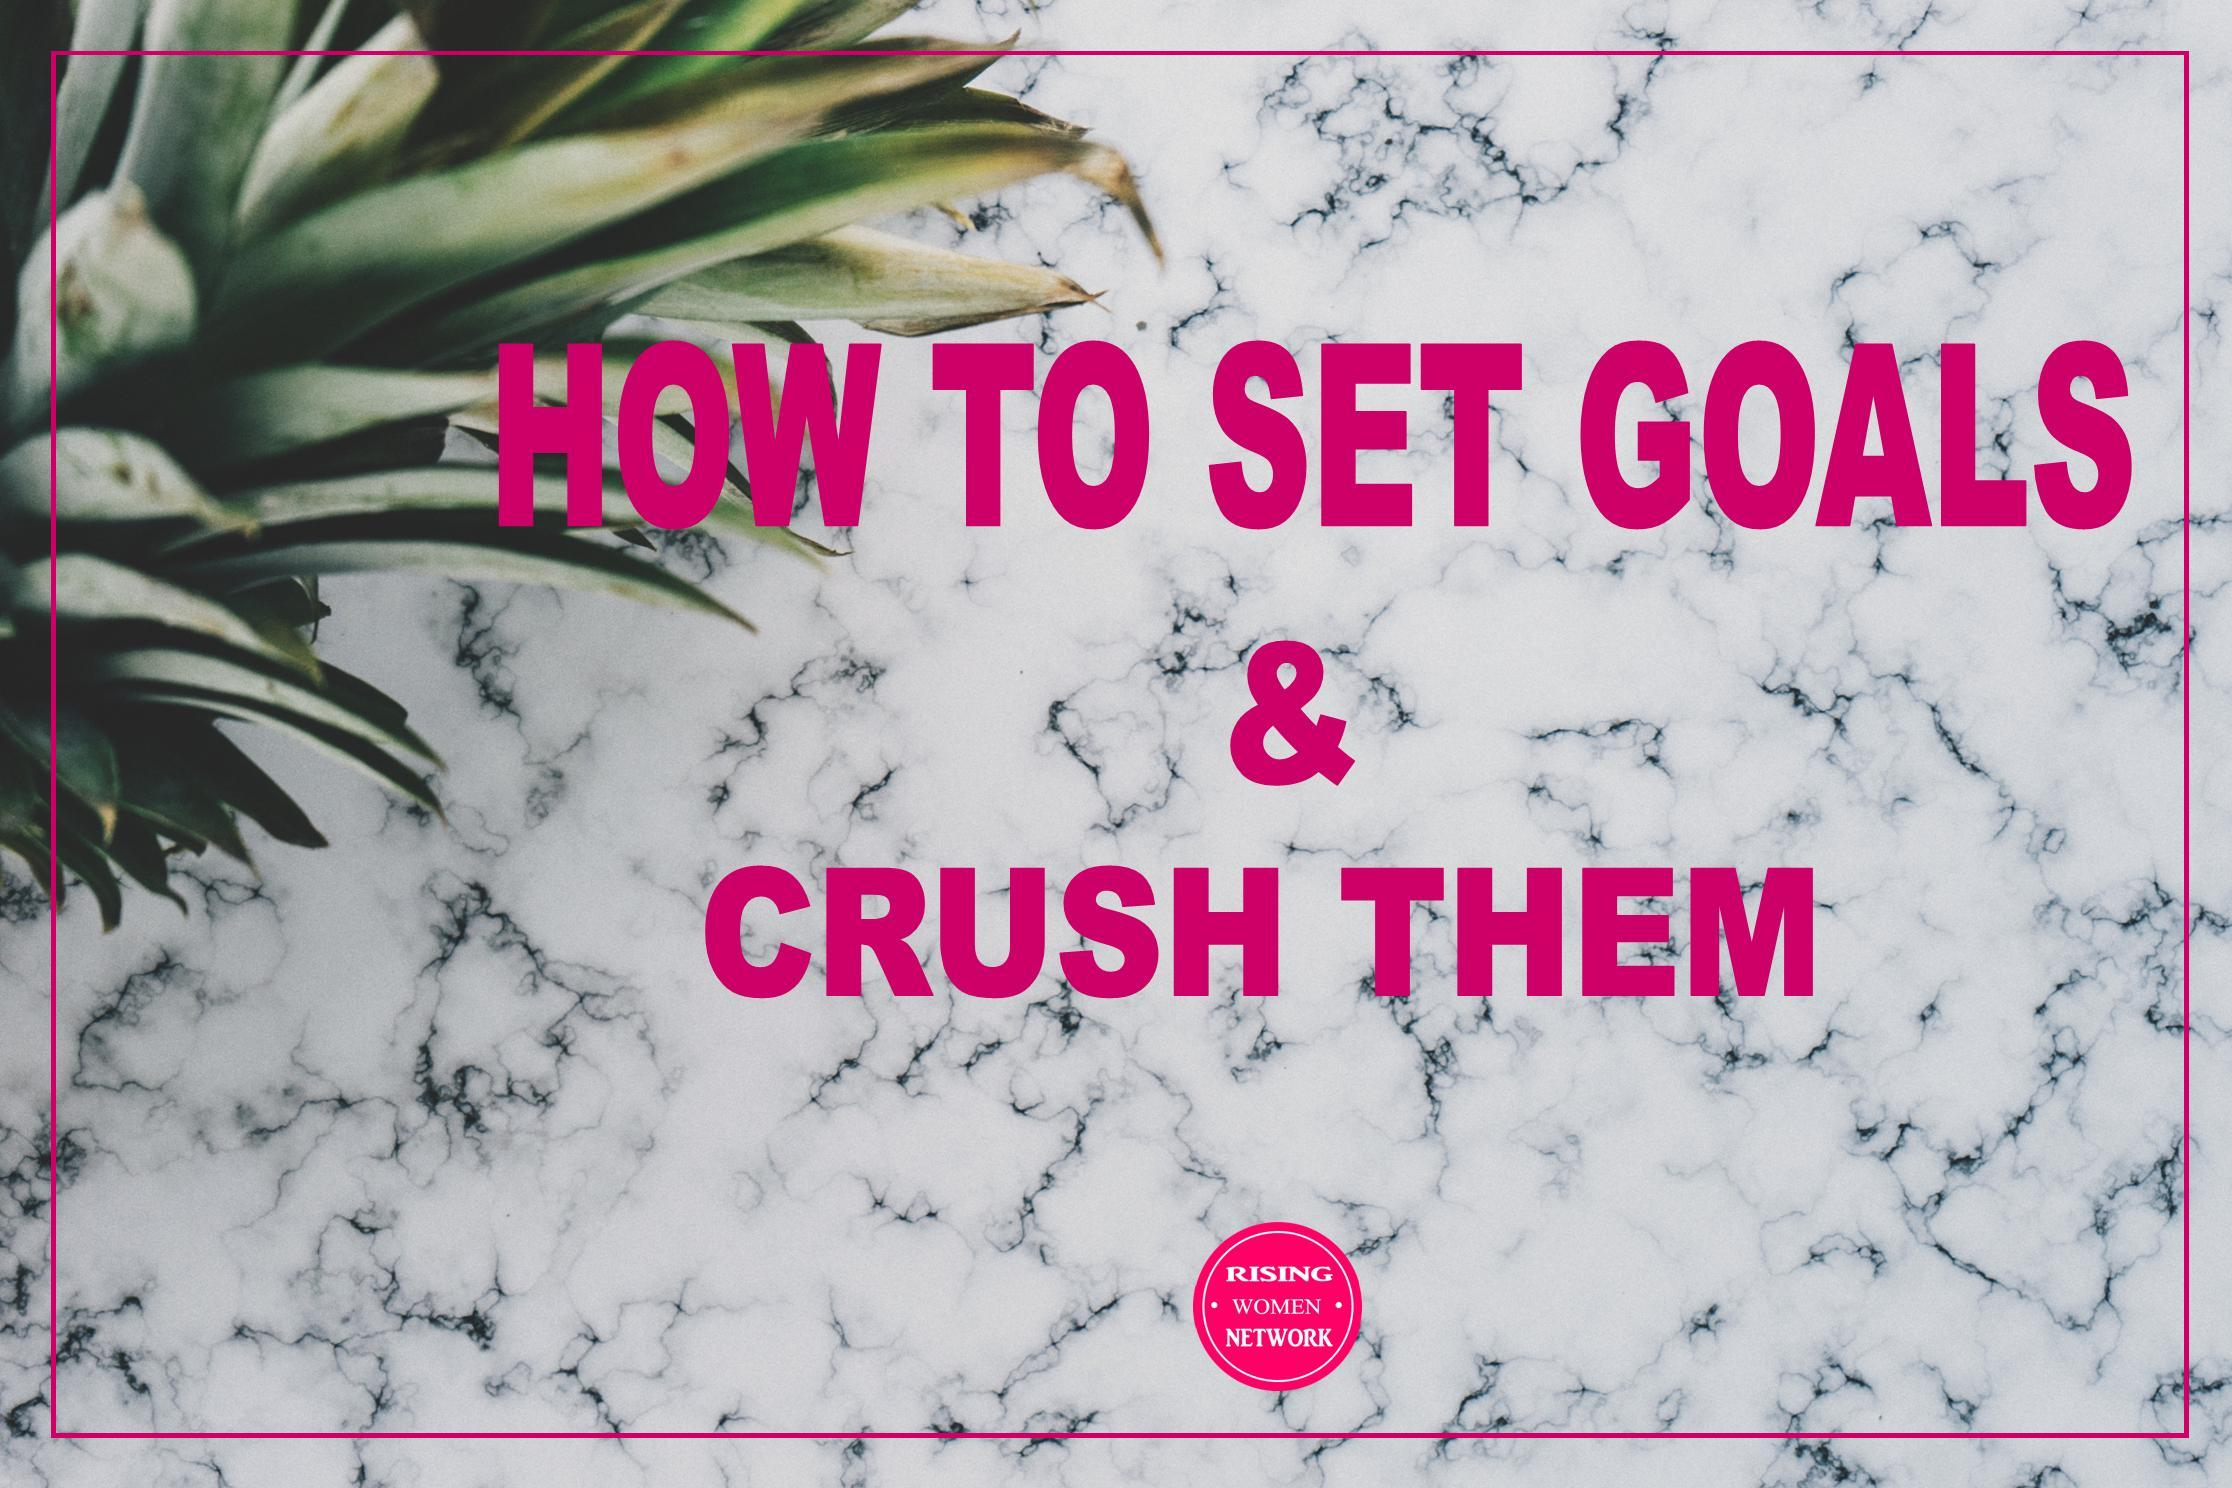 We struggle to achieve everything on those to-do lists that seem never-ending. To help, I'm sharing my tips on how to set goals and how to achieve them.